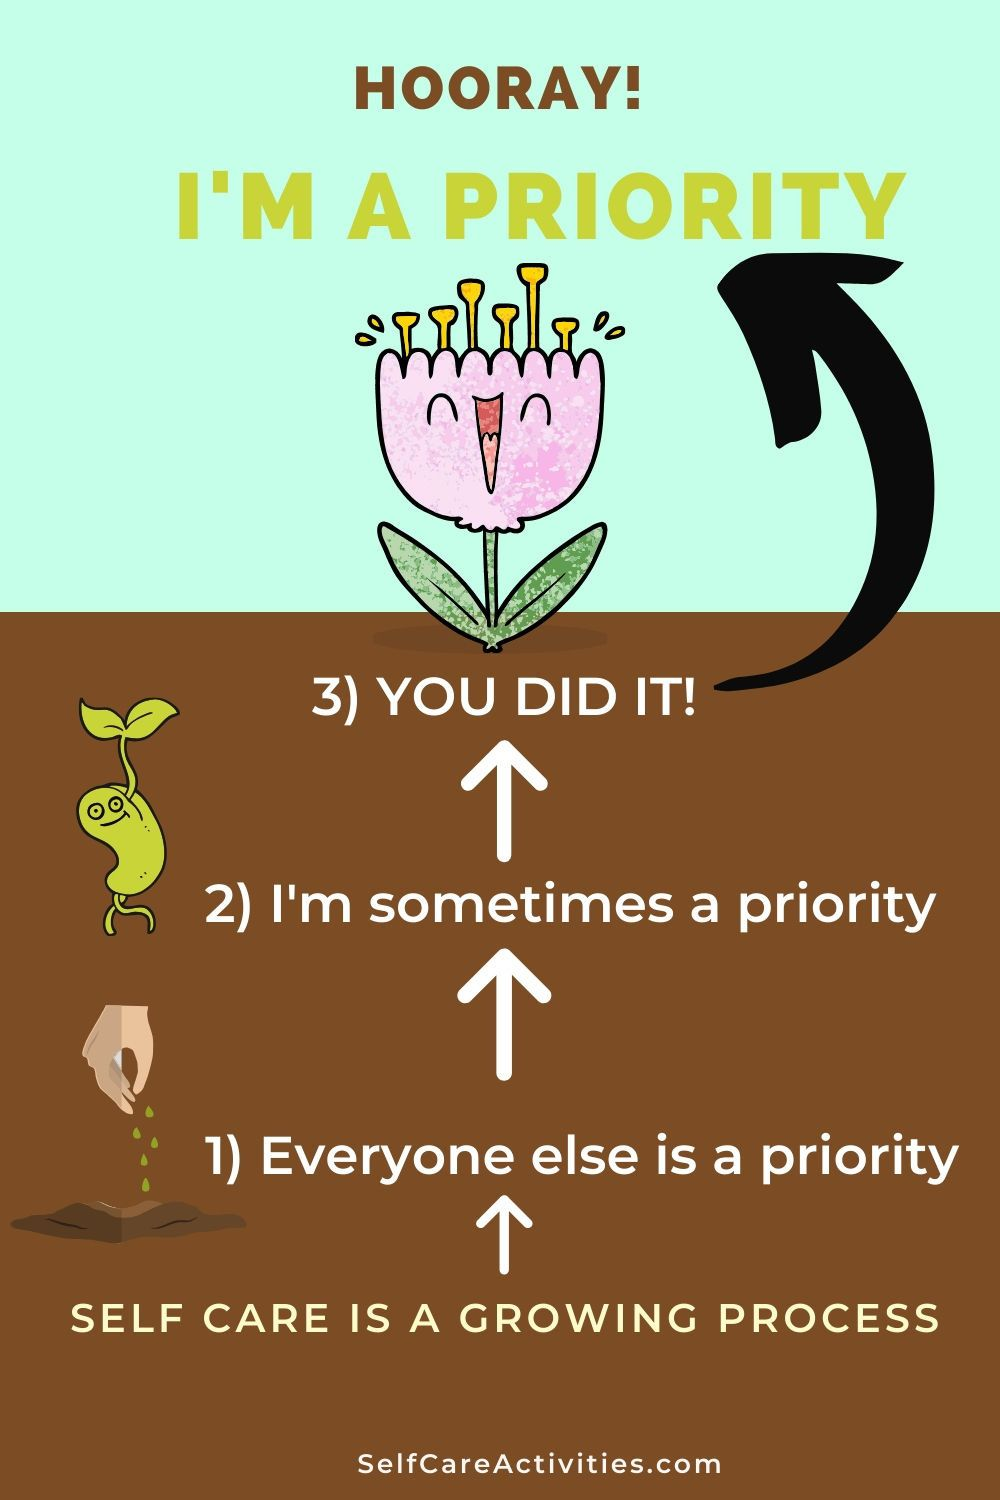 Let's grow in our selfcare together. Come find out more